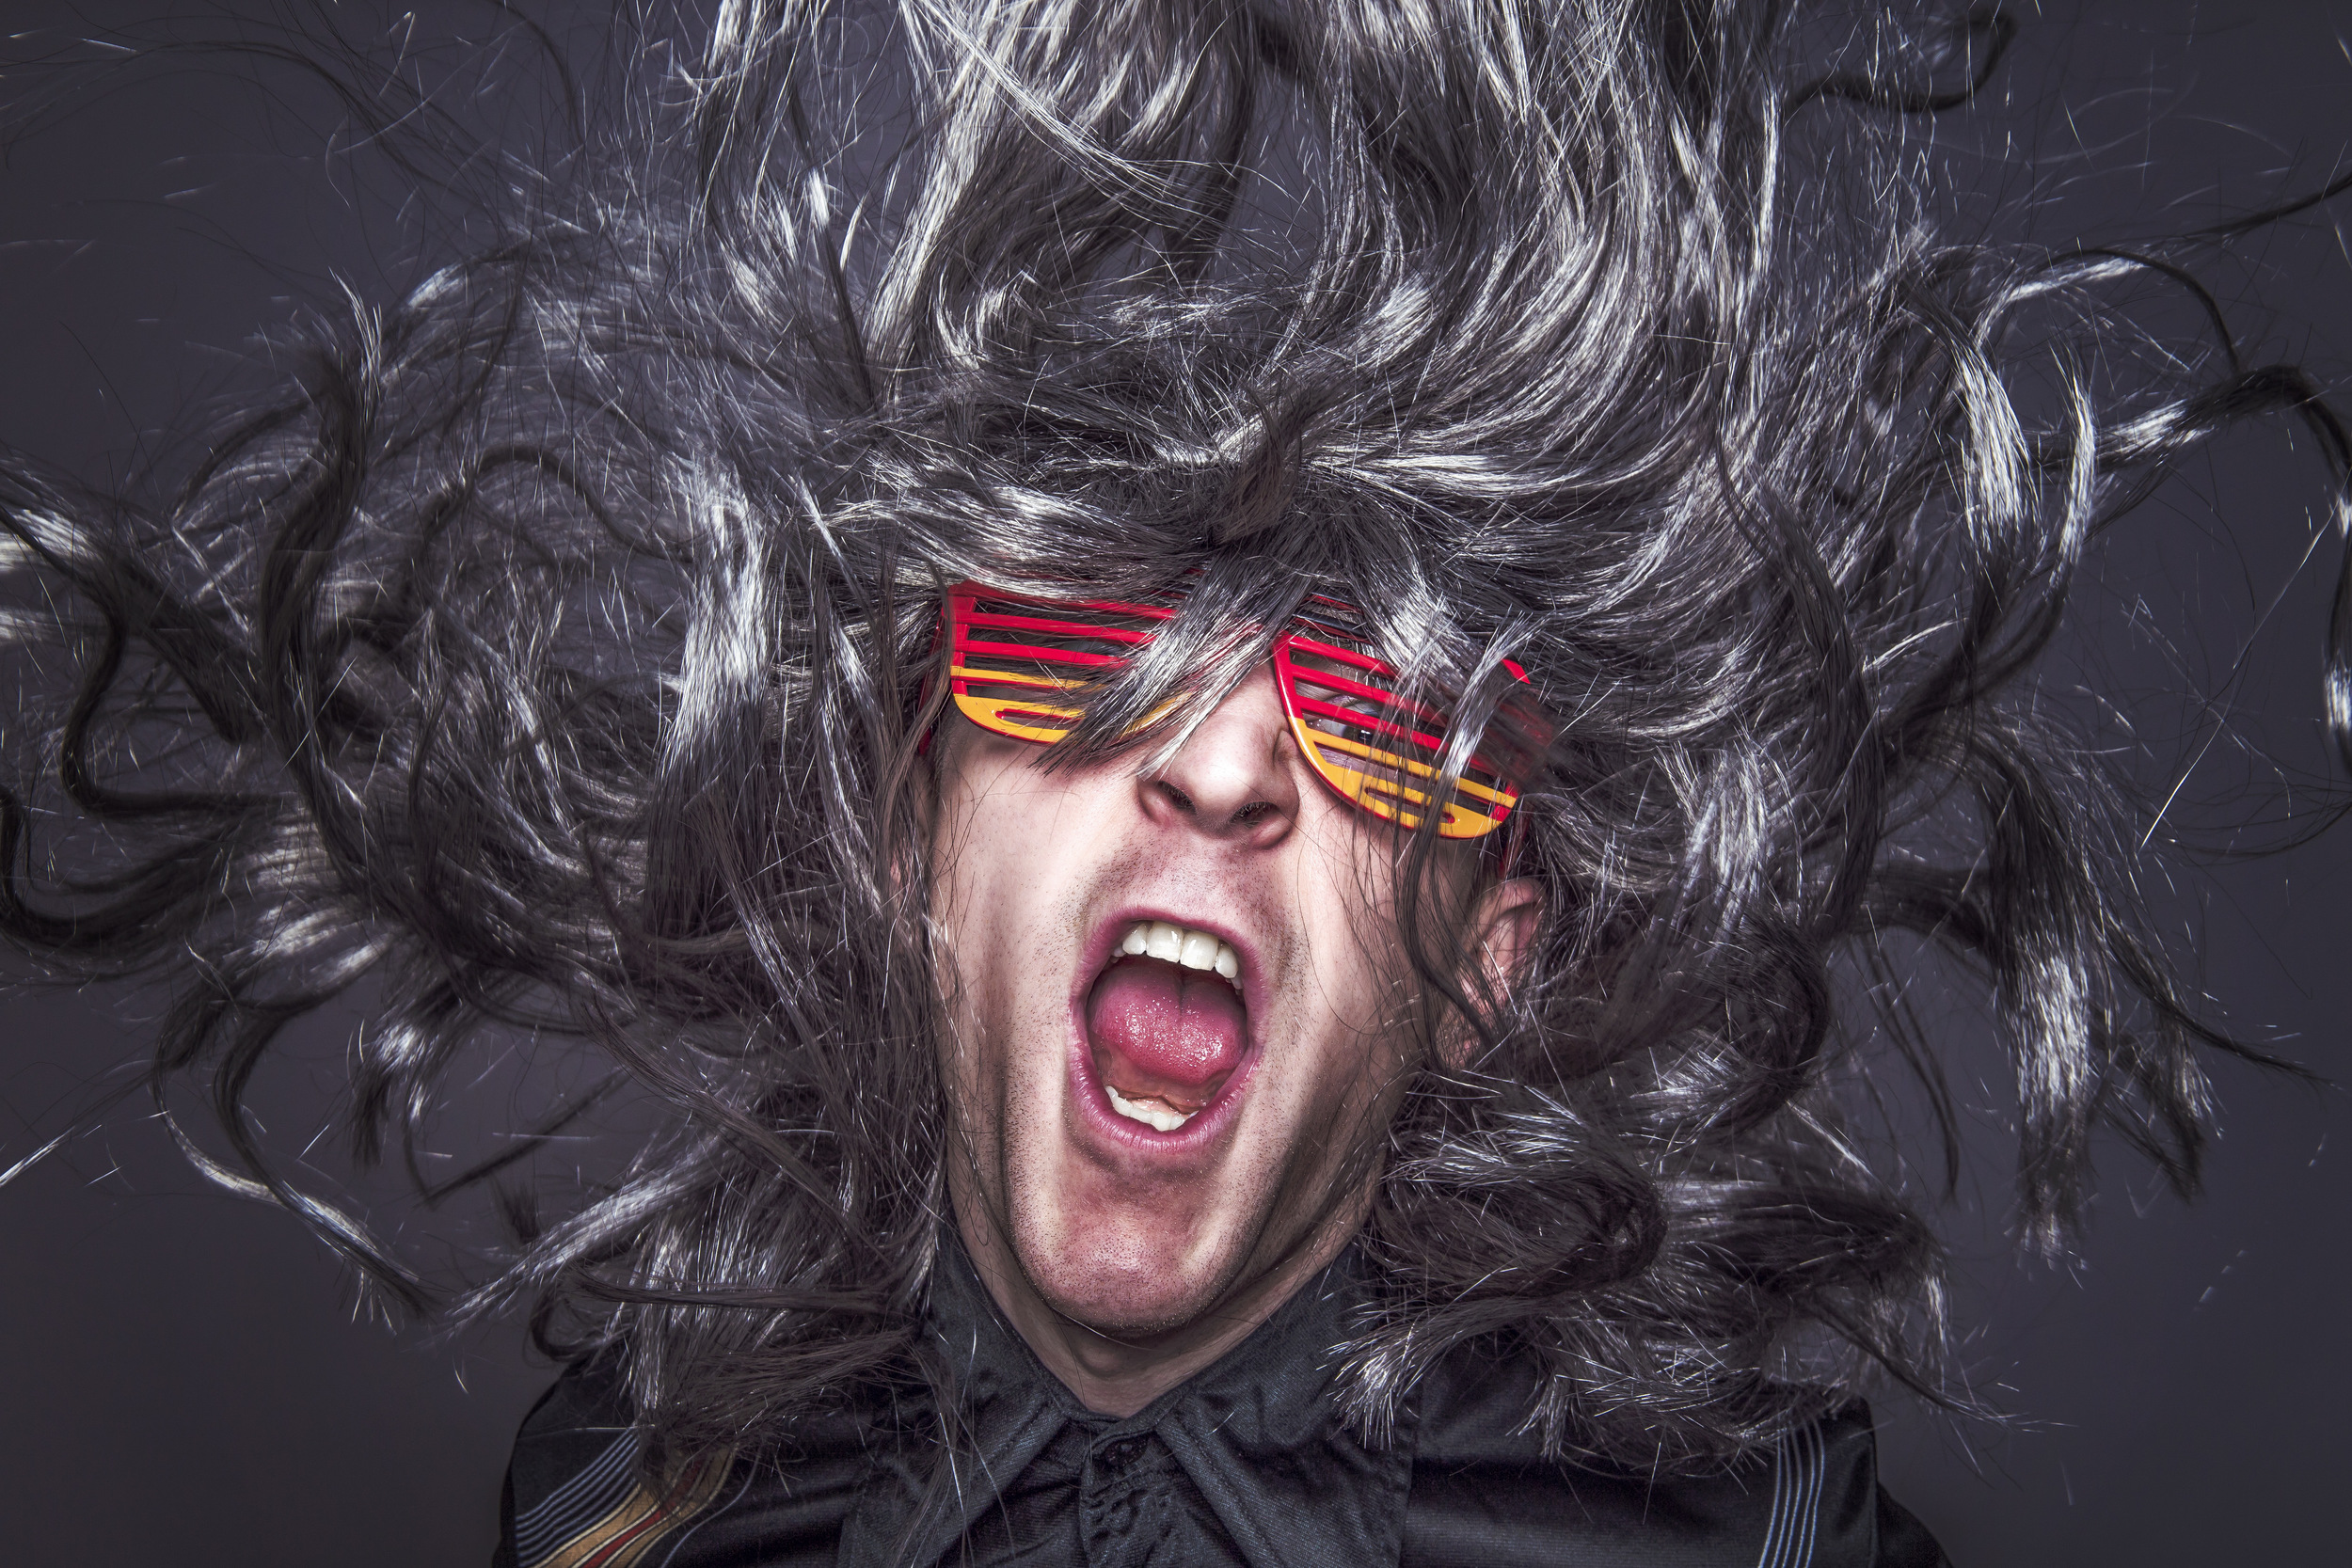 Man in wig with bright sunglasses